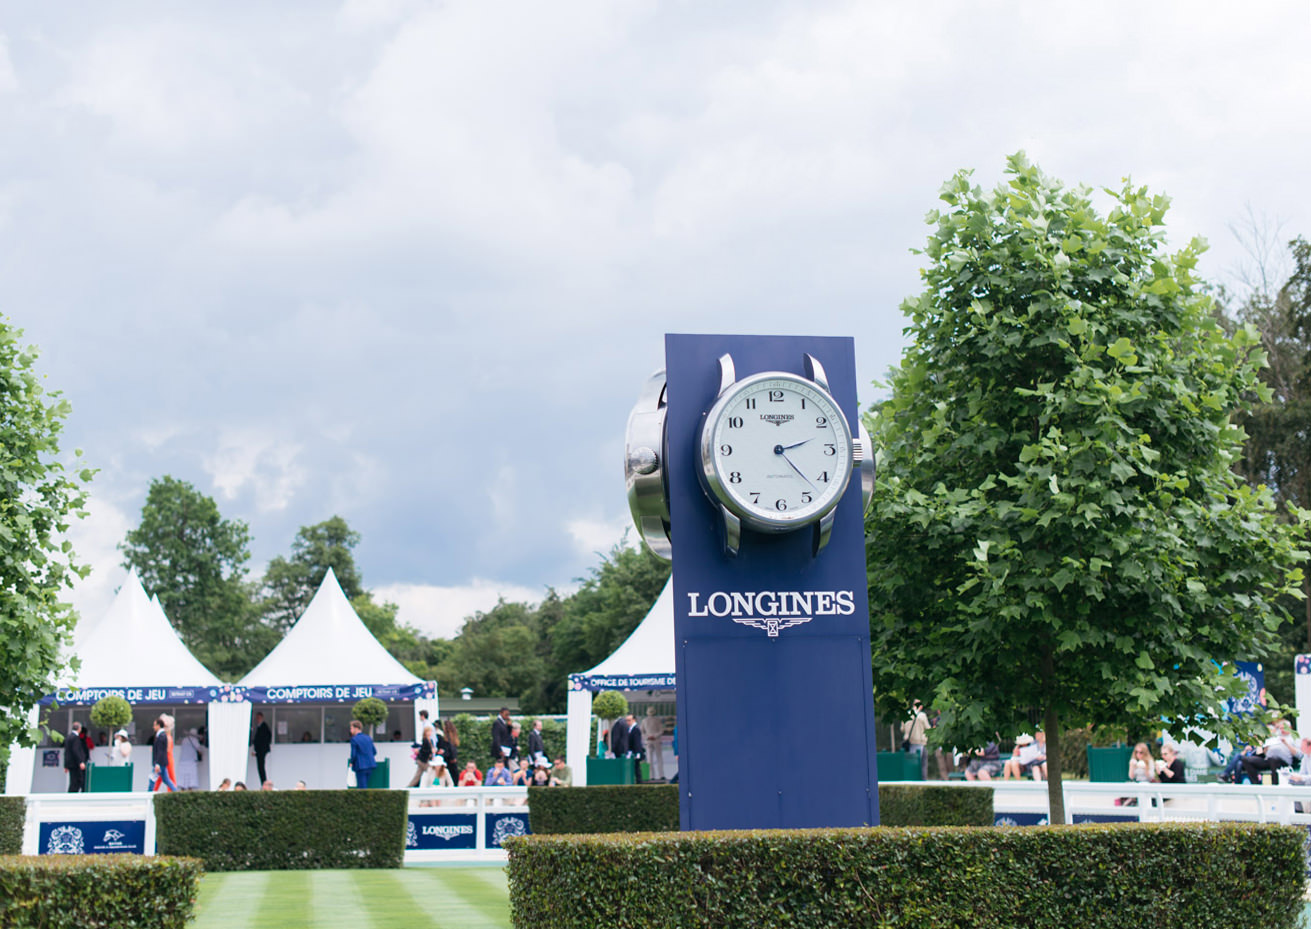 Blog-Mode-And-The-City-Lifestyle-Prix-de-Diane-Longines-2016-15